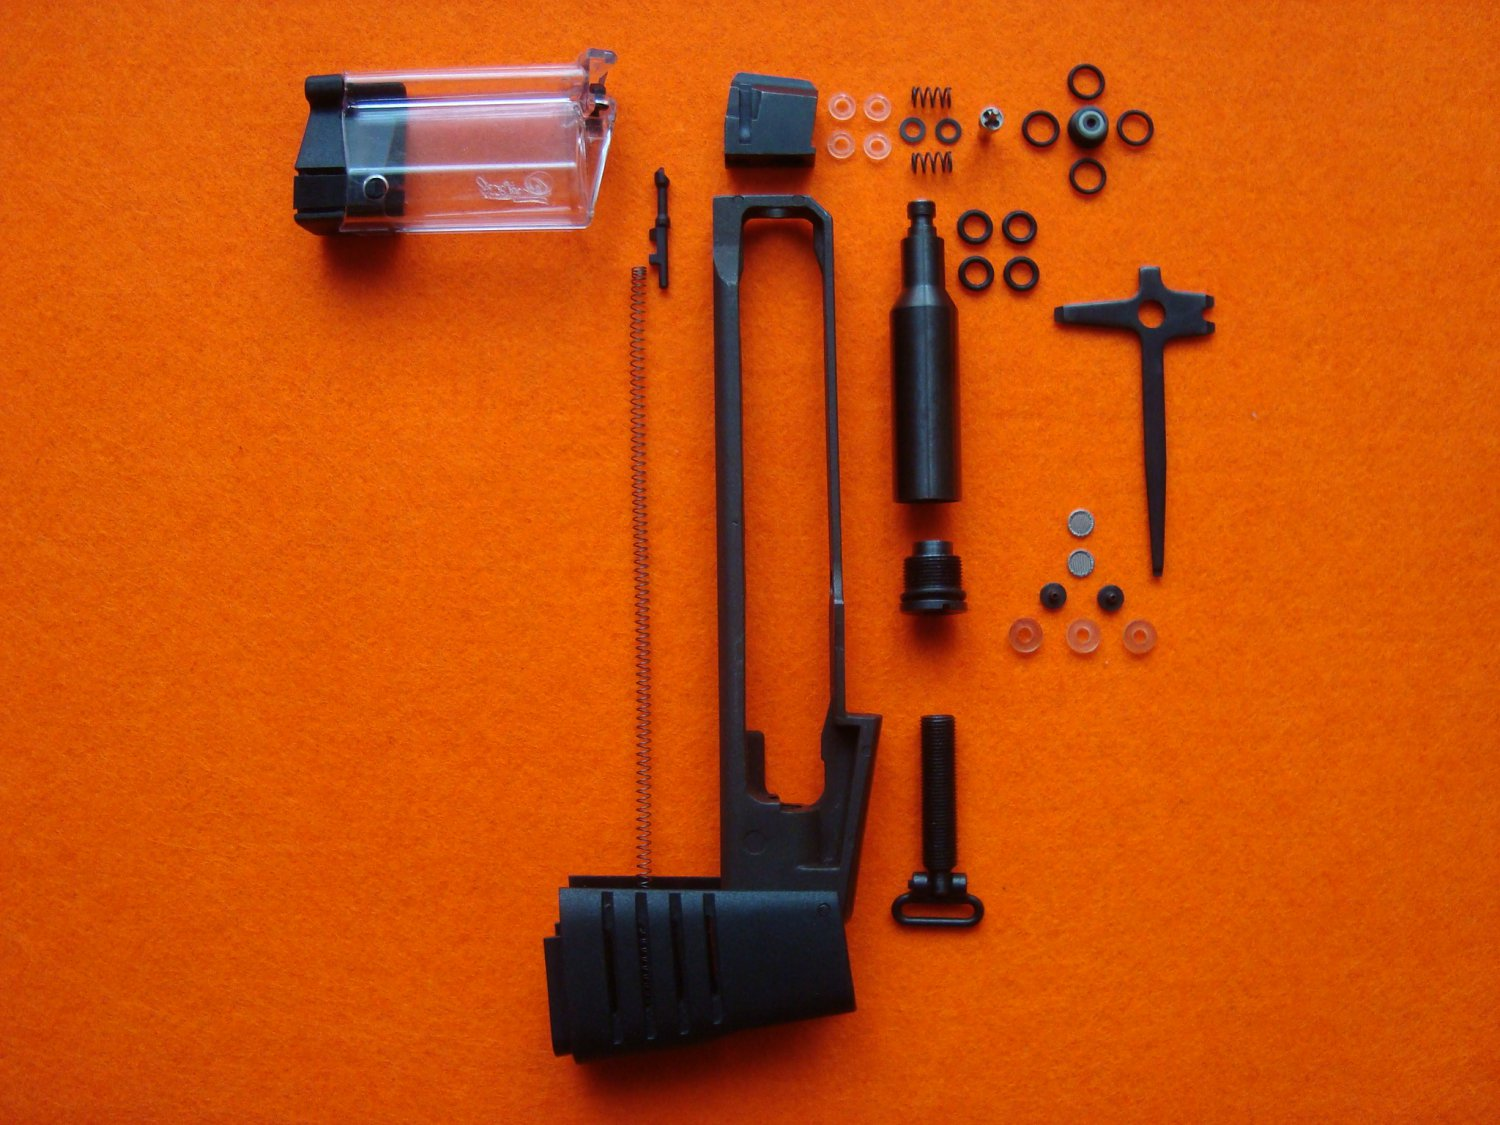 Magazine mp-661k drozd repair kit of upgraded parts, give improved indicators, details made to order